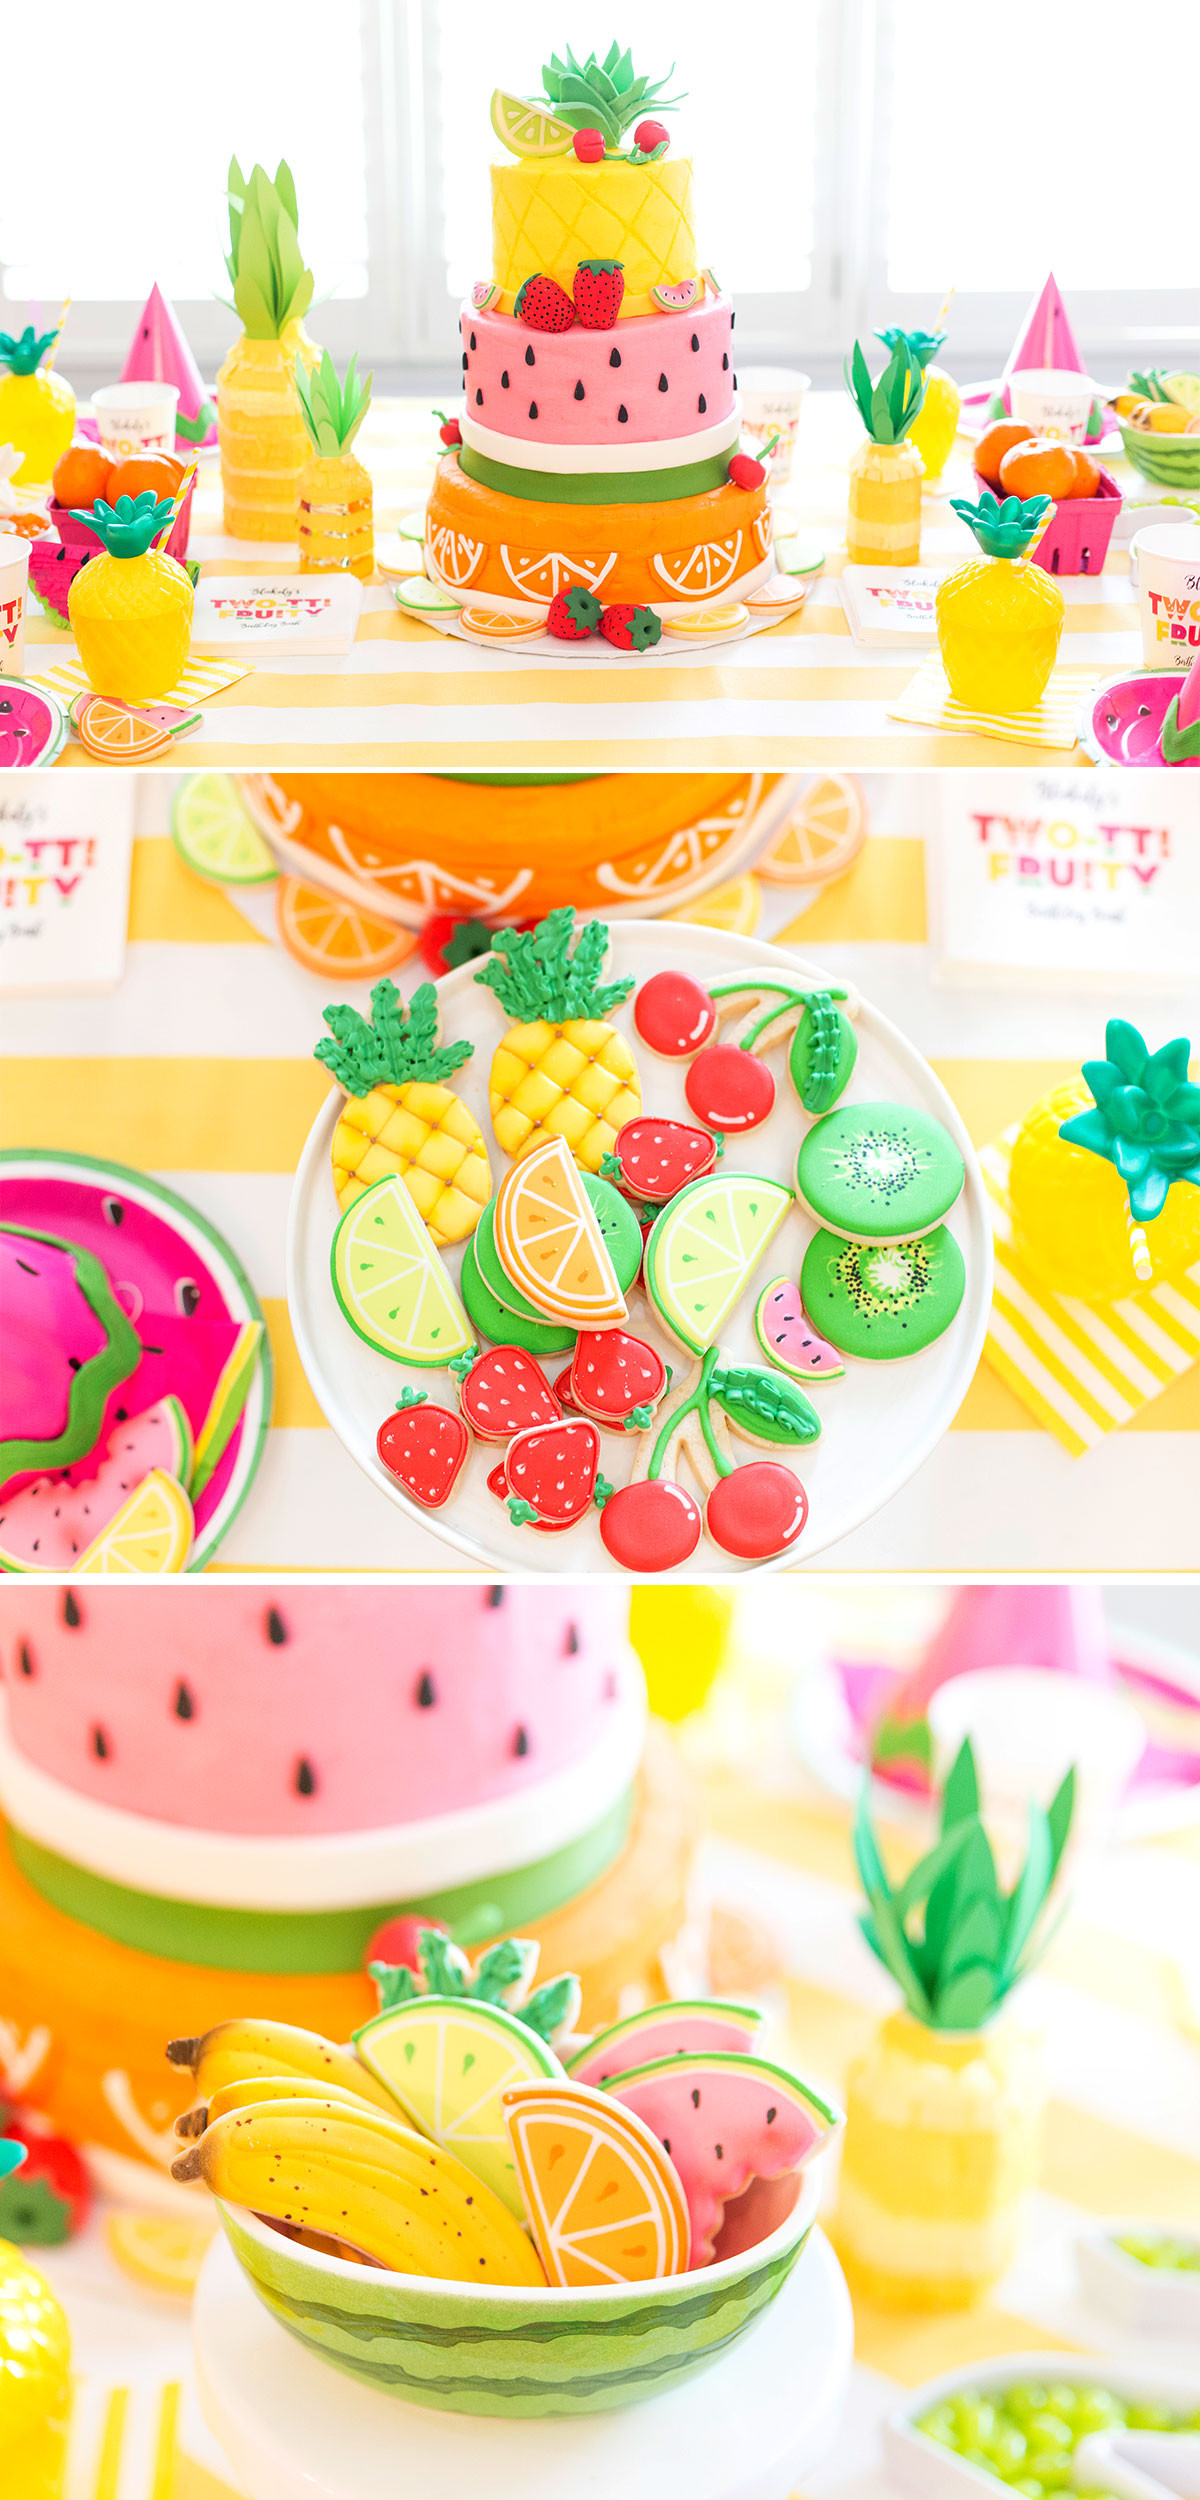 Best ideas about Birthday Party Theme . Save or Pin 25 Fun Birthday Party Theme Ideas – Fun Squared Now.